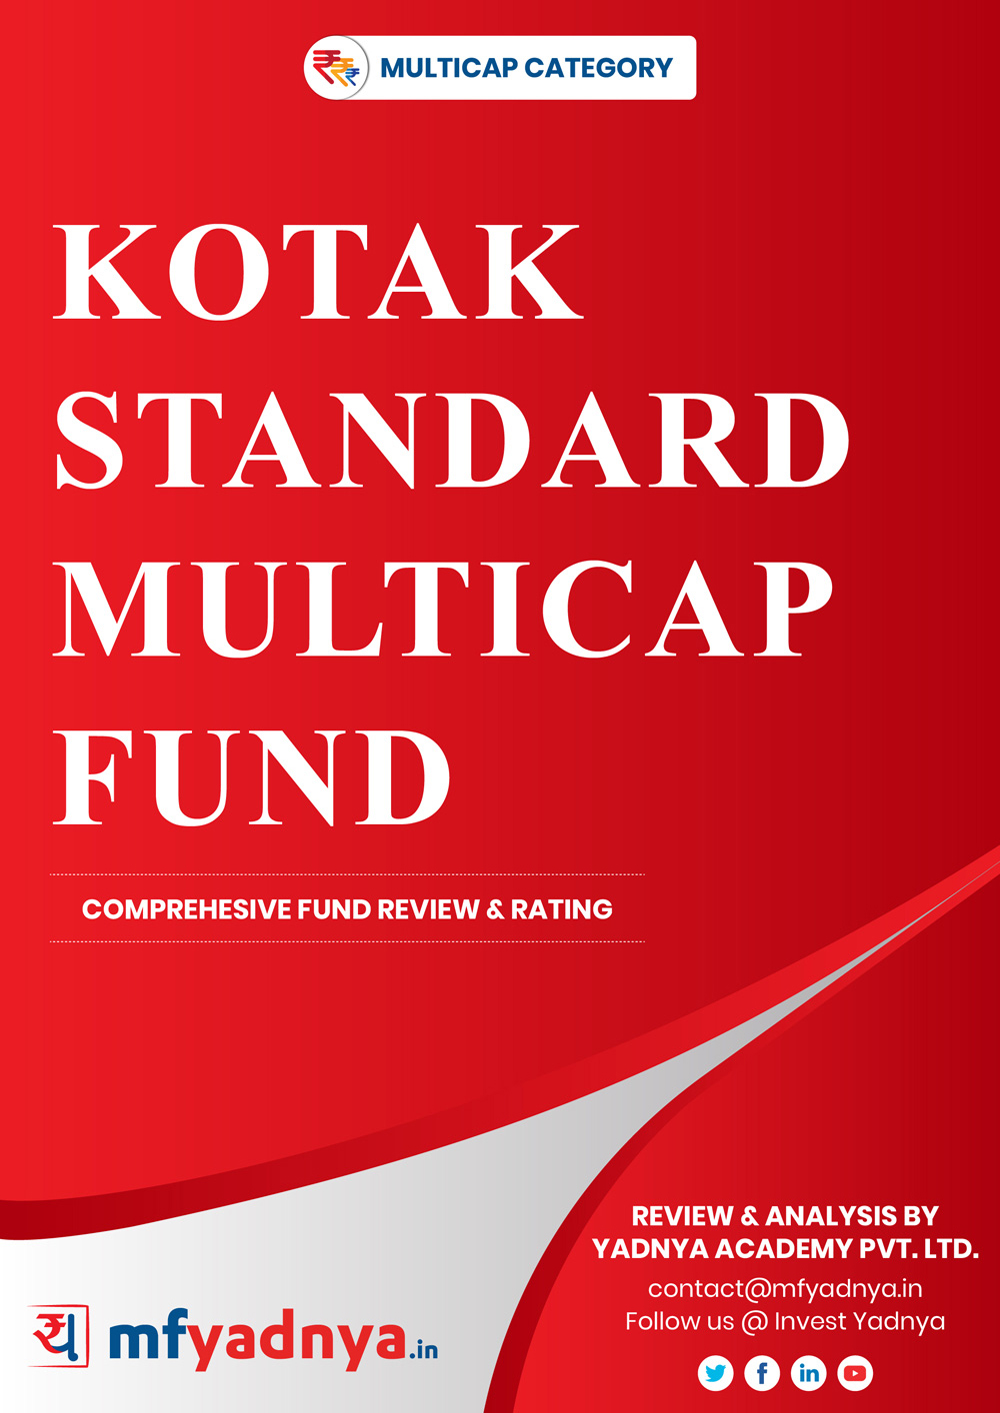 Multi-Cap Category Review - Kotak Standard Multicap Fund. Most Comprehensive and detailed MF review based on Yadnya's proprietary methodology of Green, Yellow & Red Star. Detailed Analysis & Review based on July 31st, 2019 data.